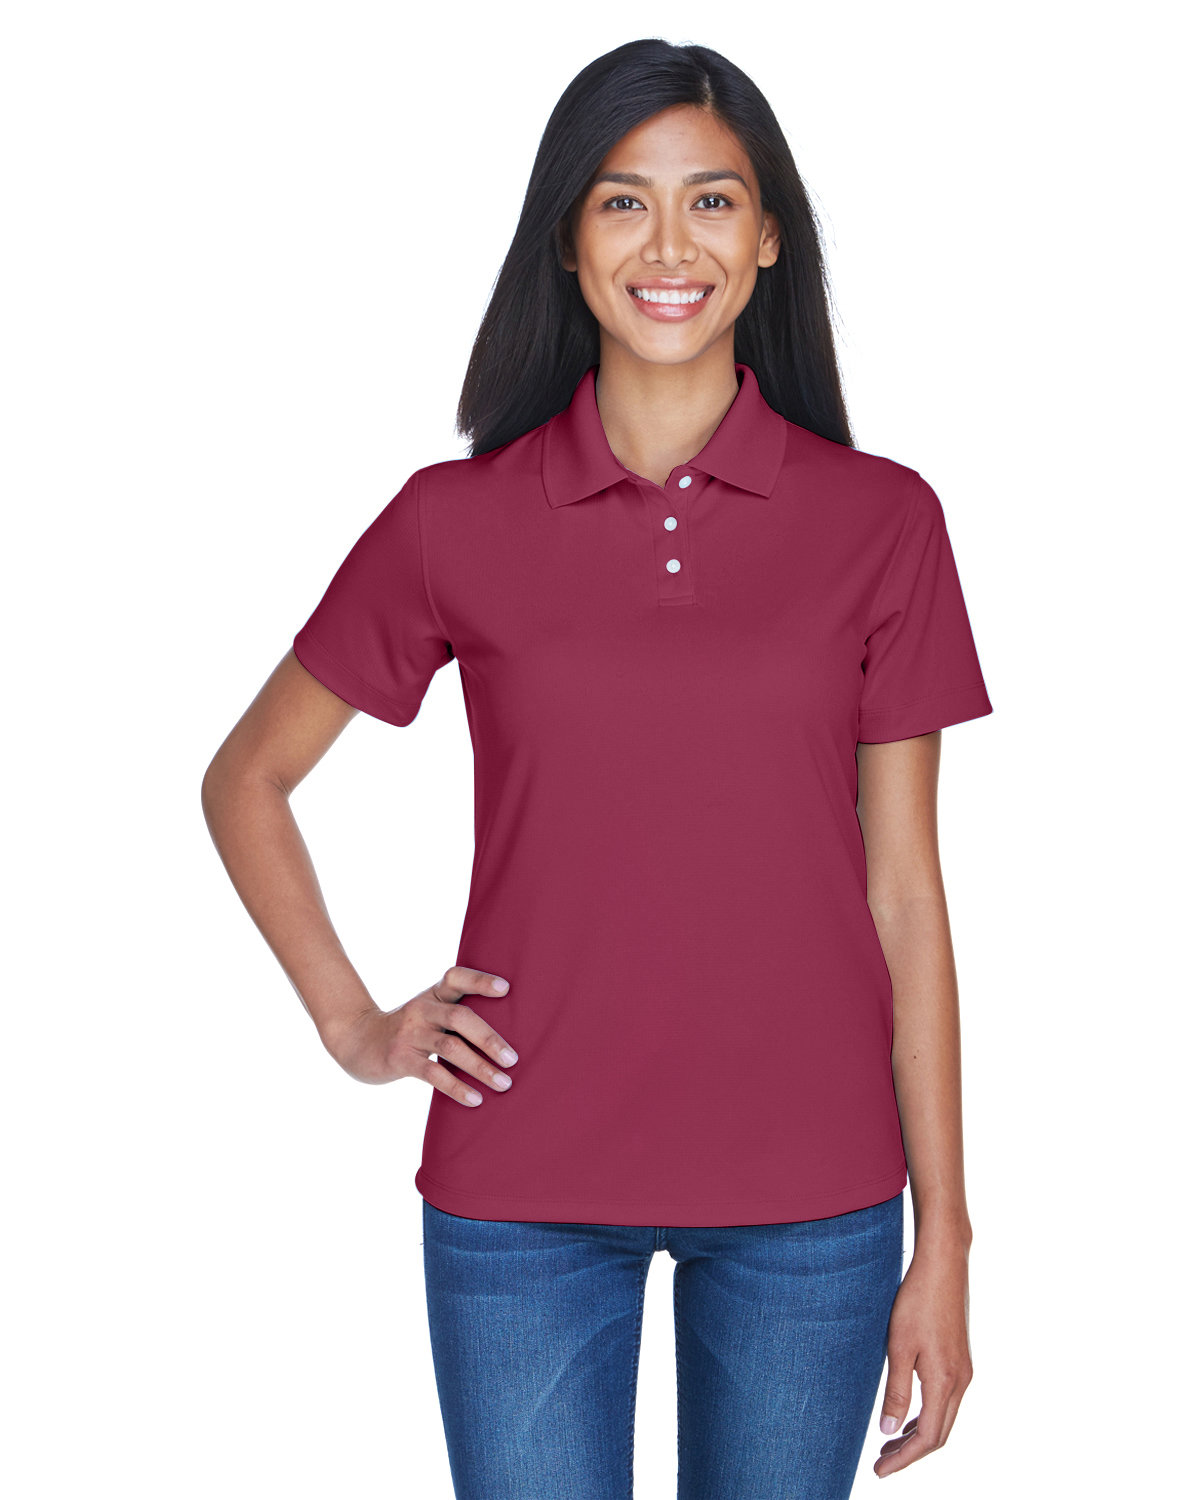 UltraClub Ladies' Cool & Dry Stain-Release Performance Polo MAROON